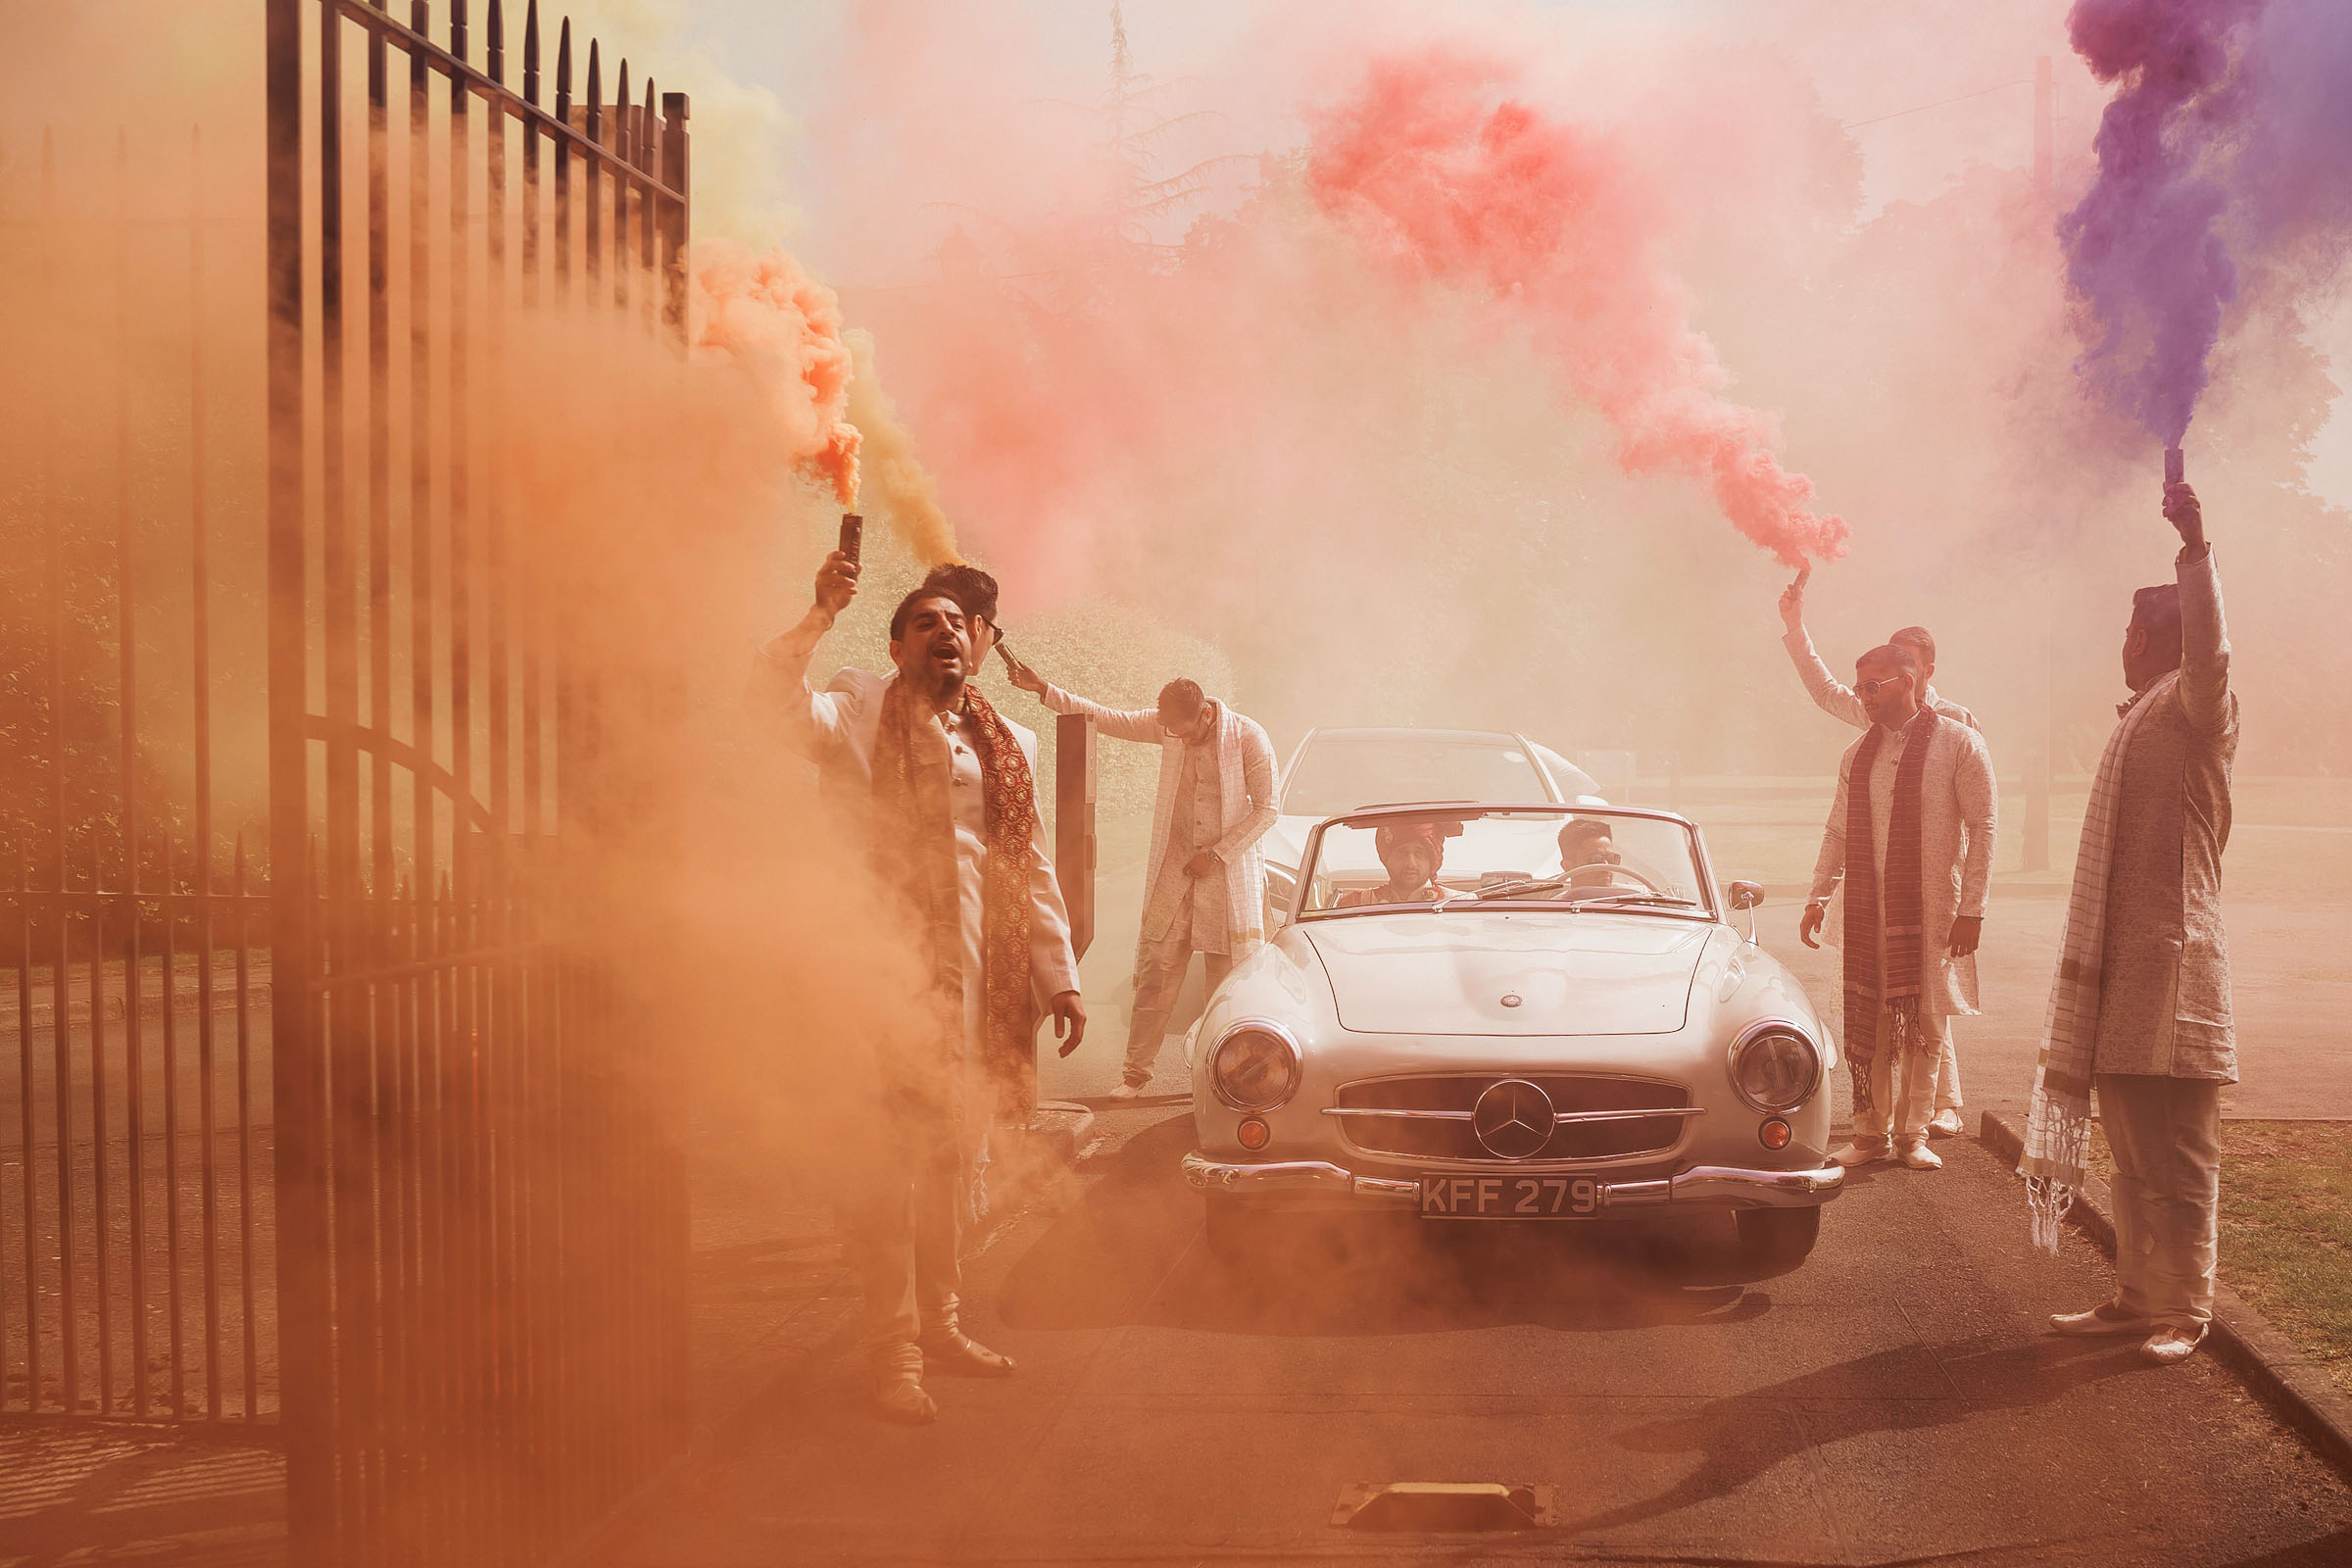 Colored smoke bombs escort car - Photo by F5 Photography